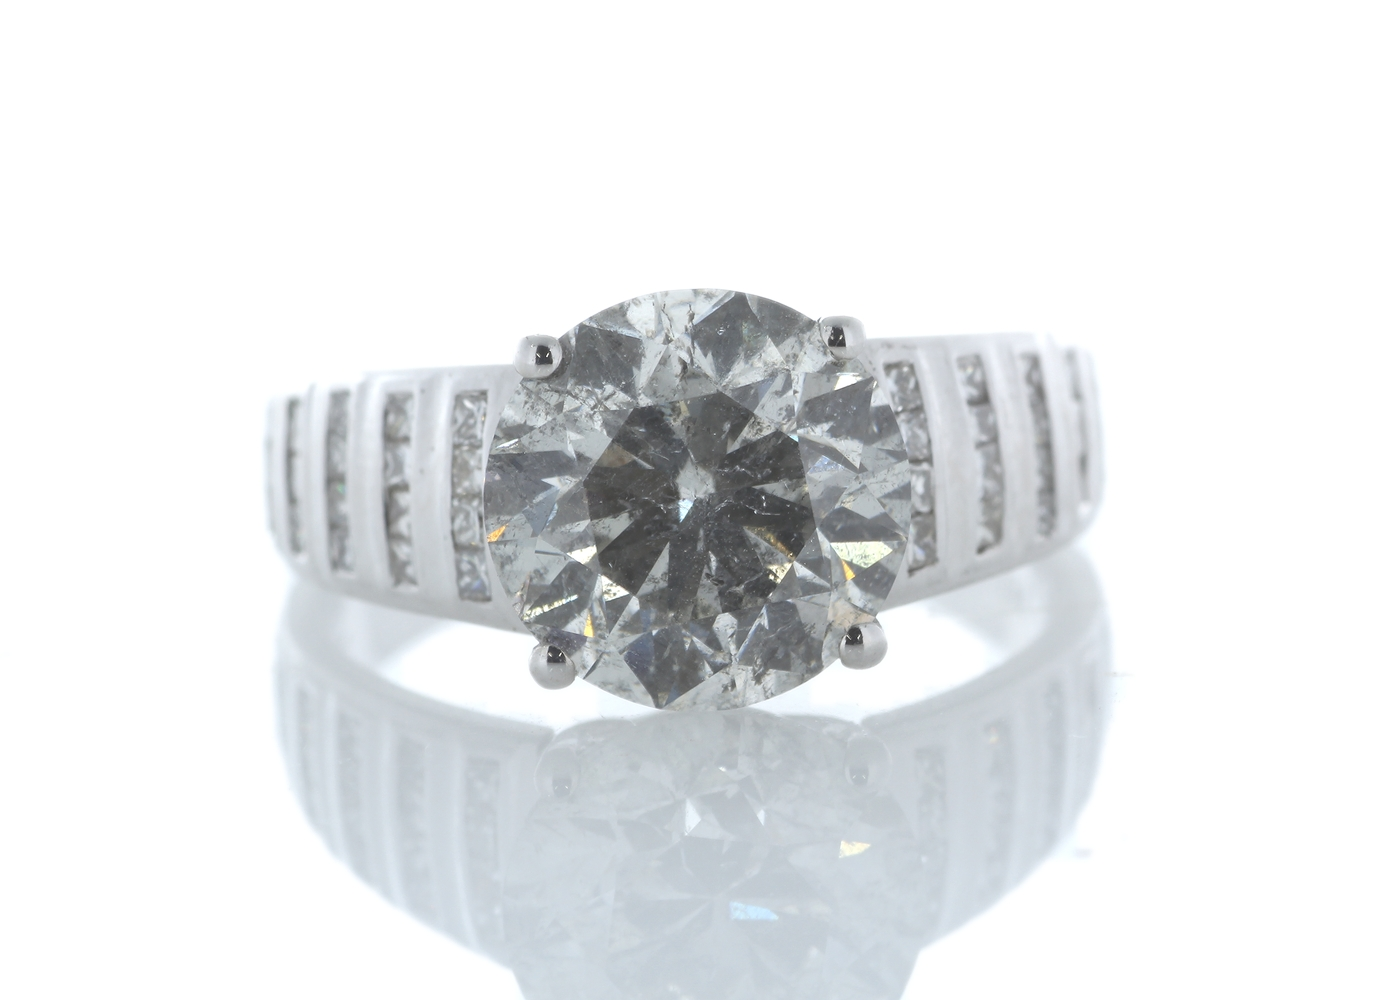 Lot 26 - 18ct White Gold Single Stone Prong Set With Stone Set Shoulders Diamond Ring 4.65 Carats